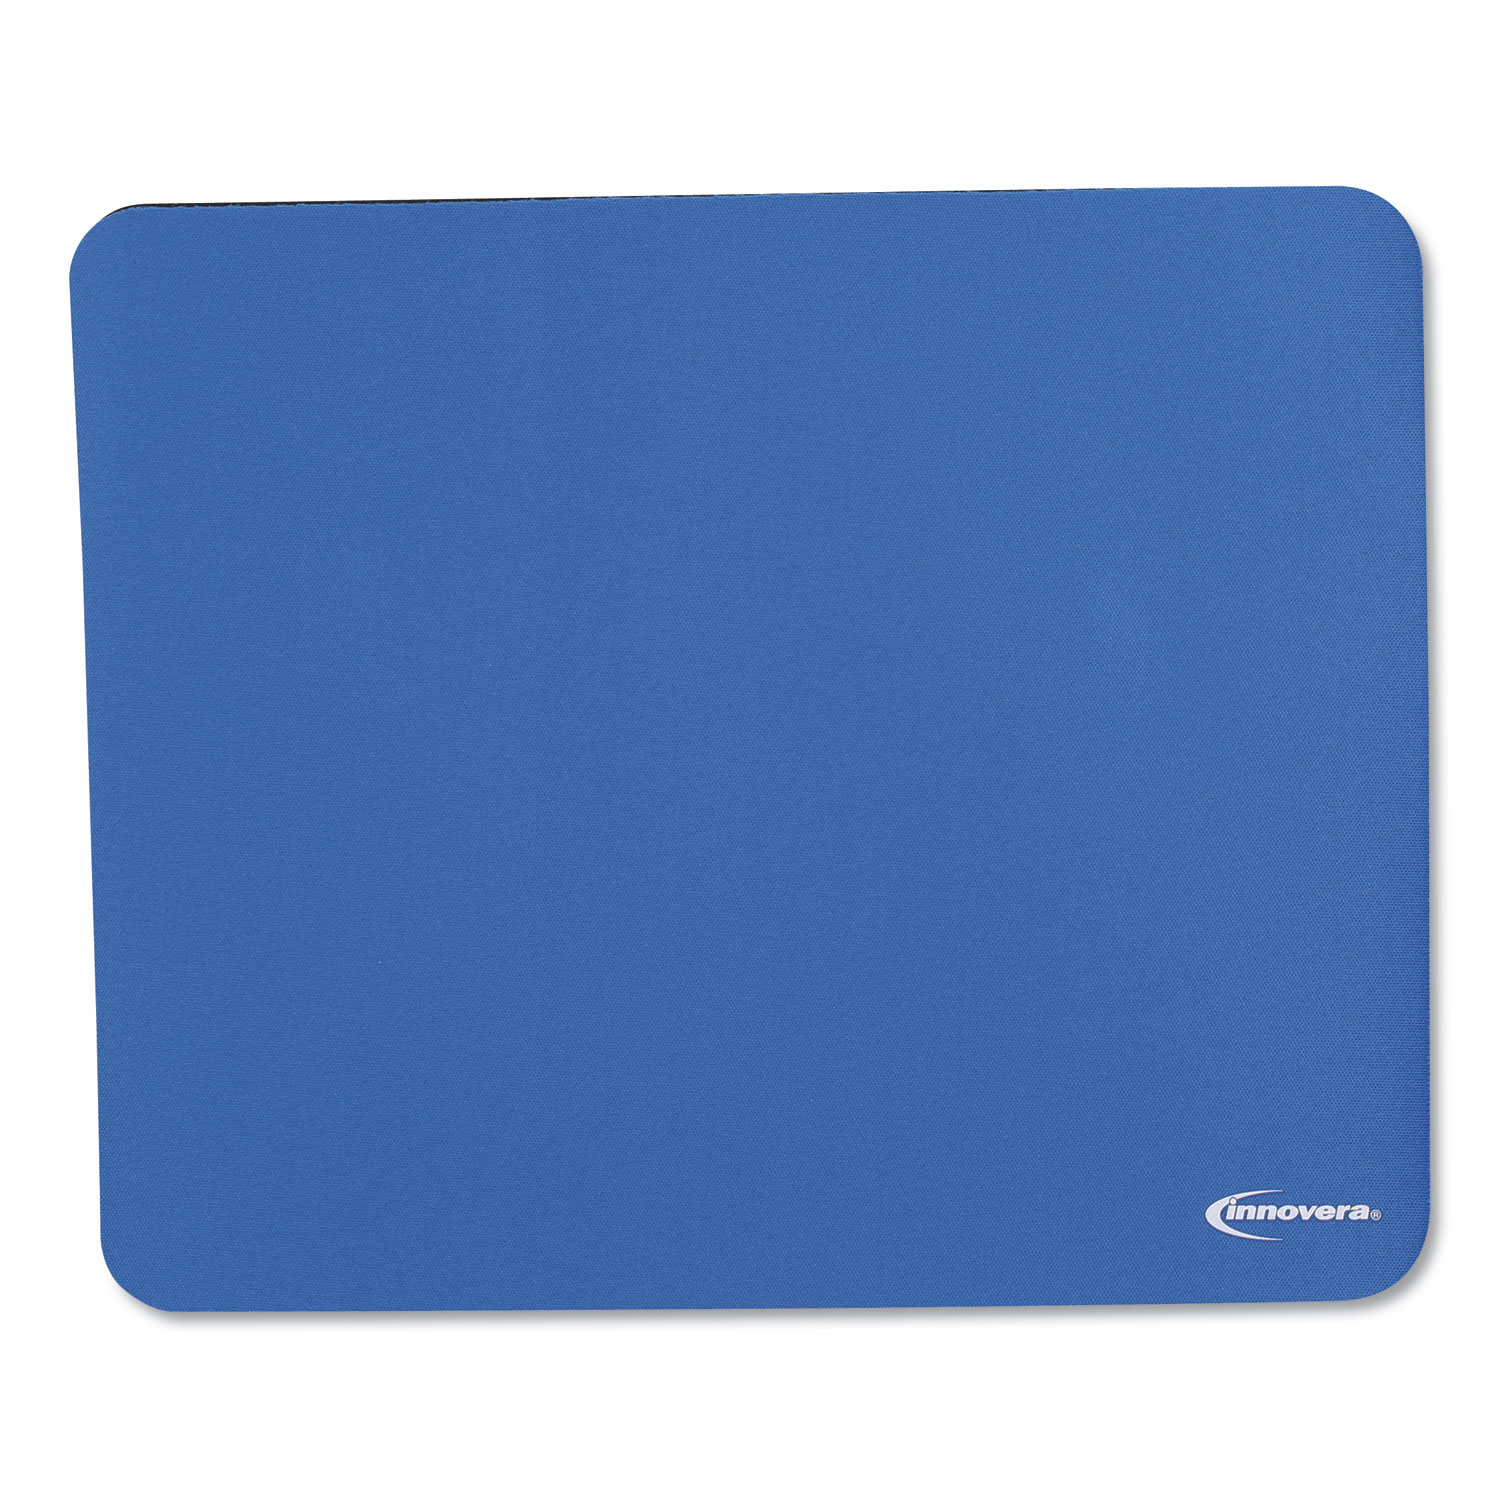 Latex-Free Mouse Pad, Blue